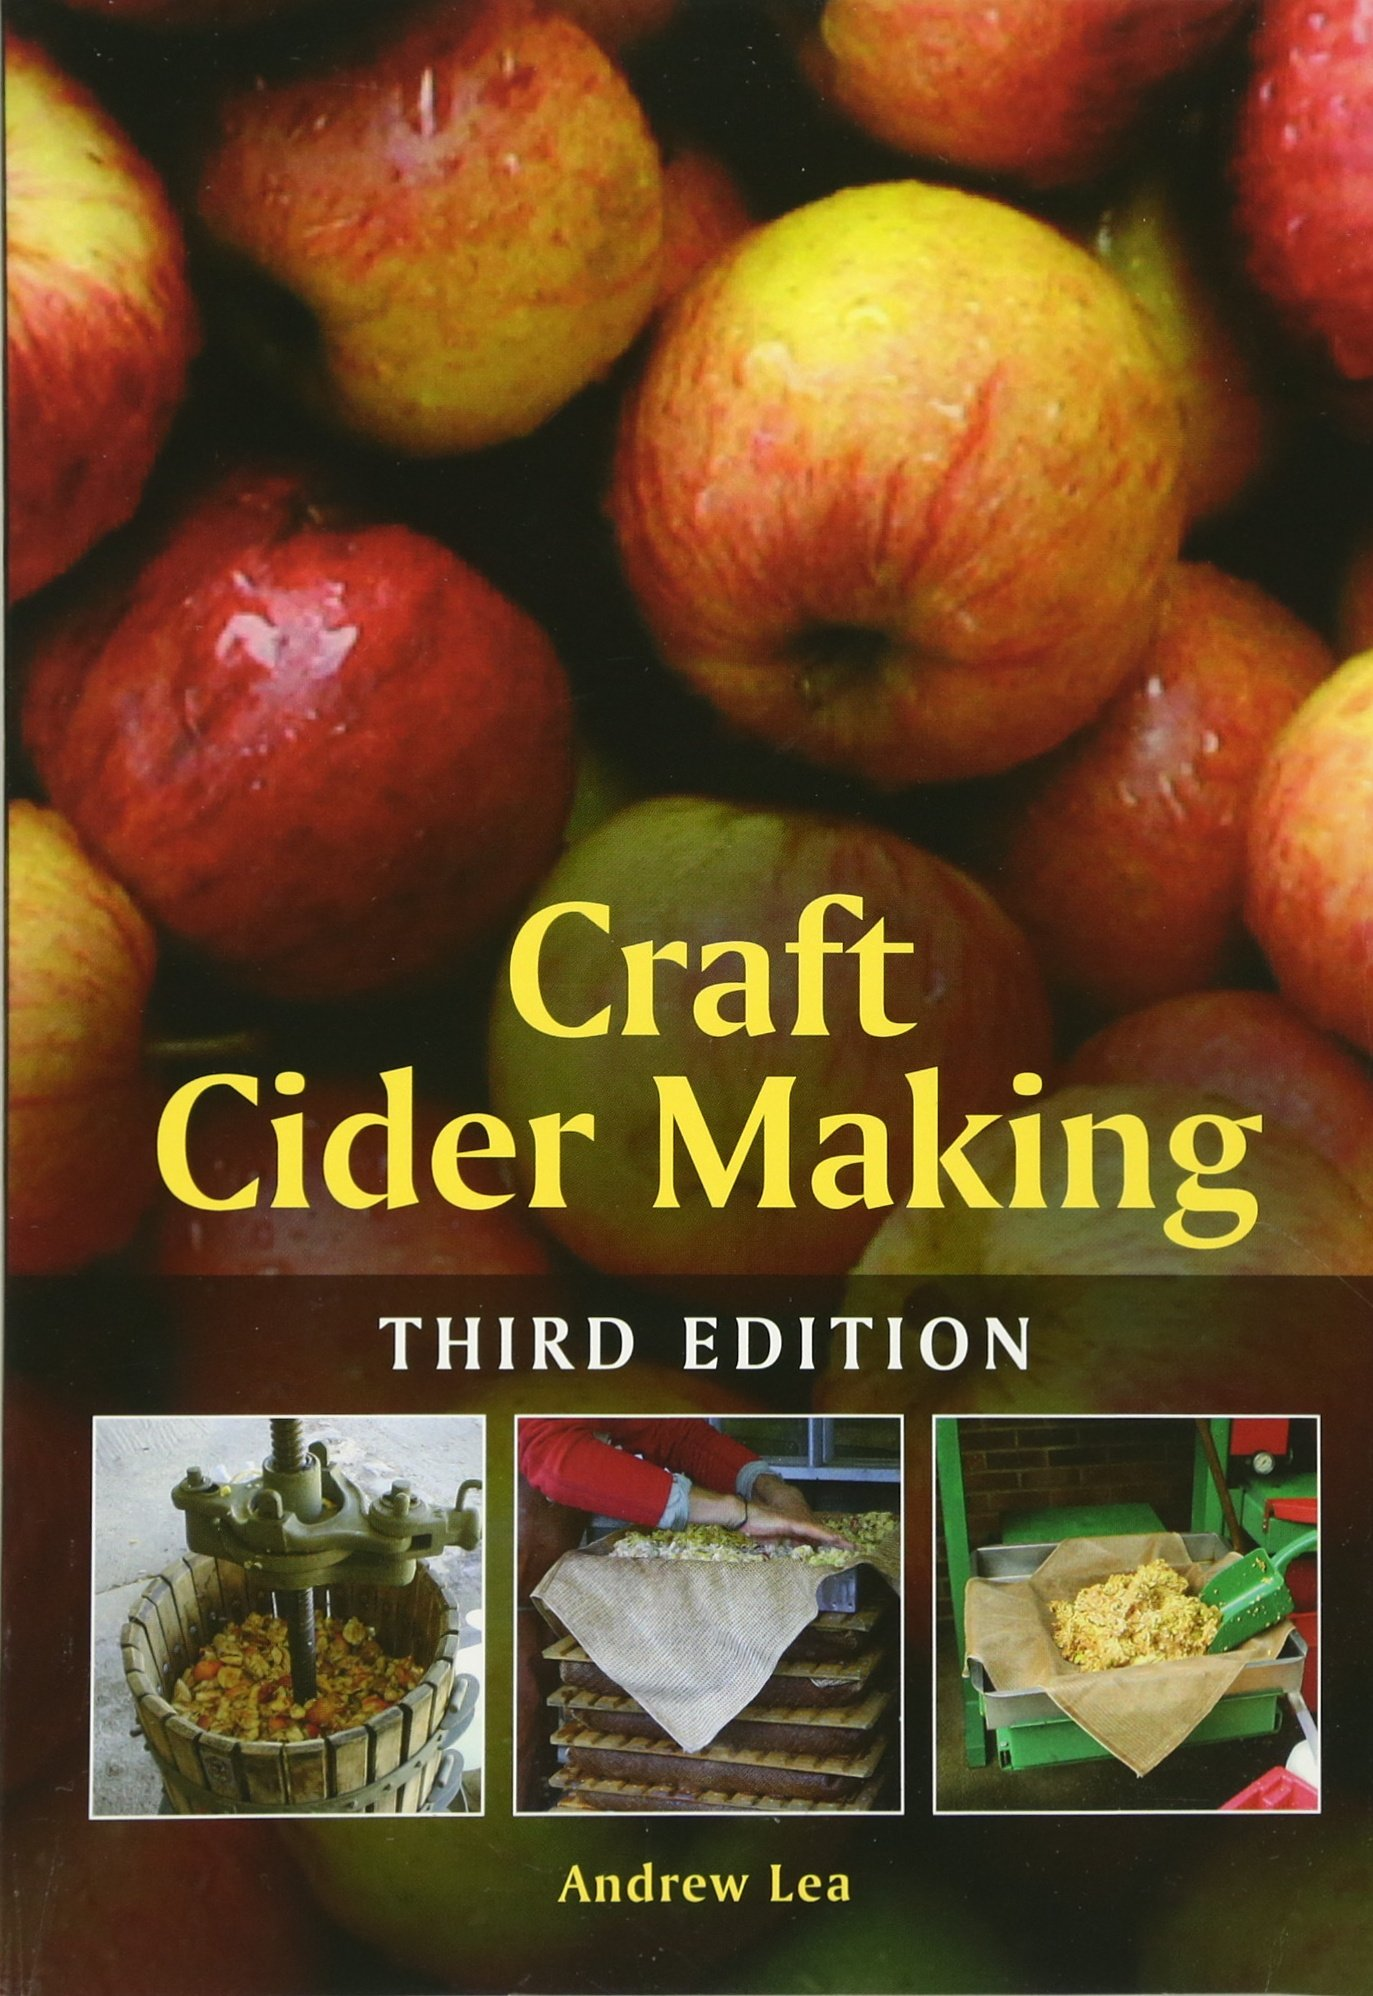 Image OfCraft Cider Making